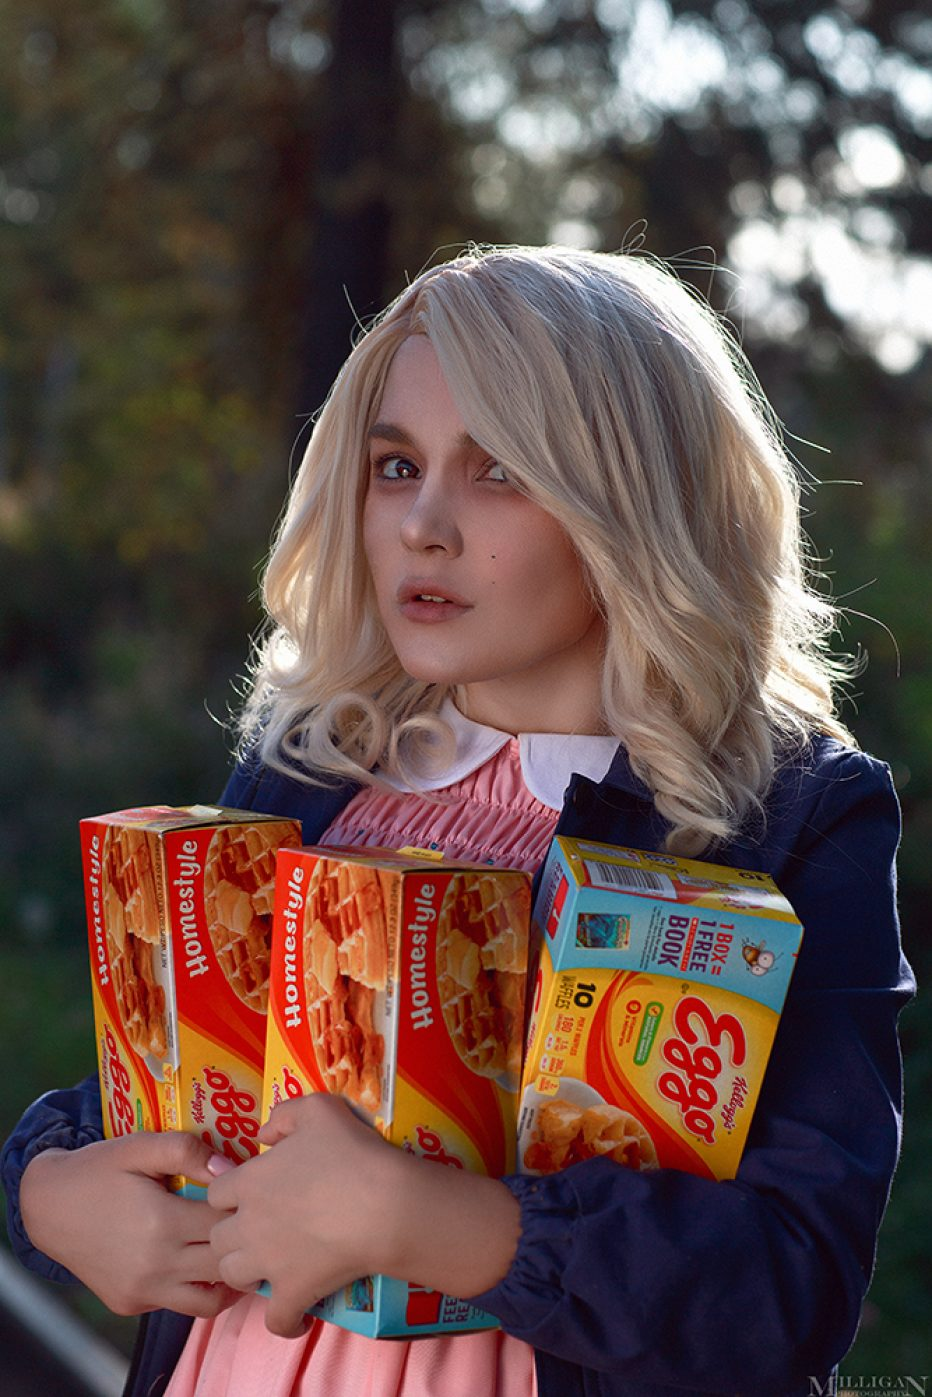 Stranger-Things-Eleven-Cosplay-Gamers-Heroes-2.jpg